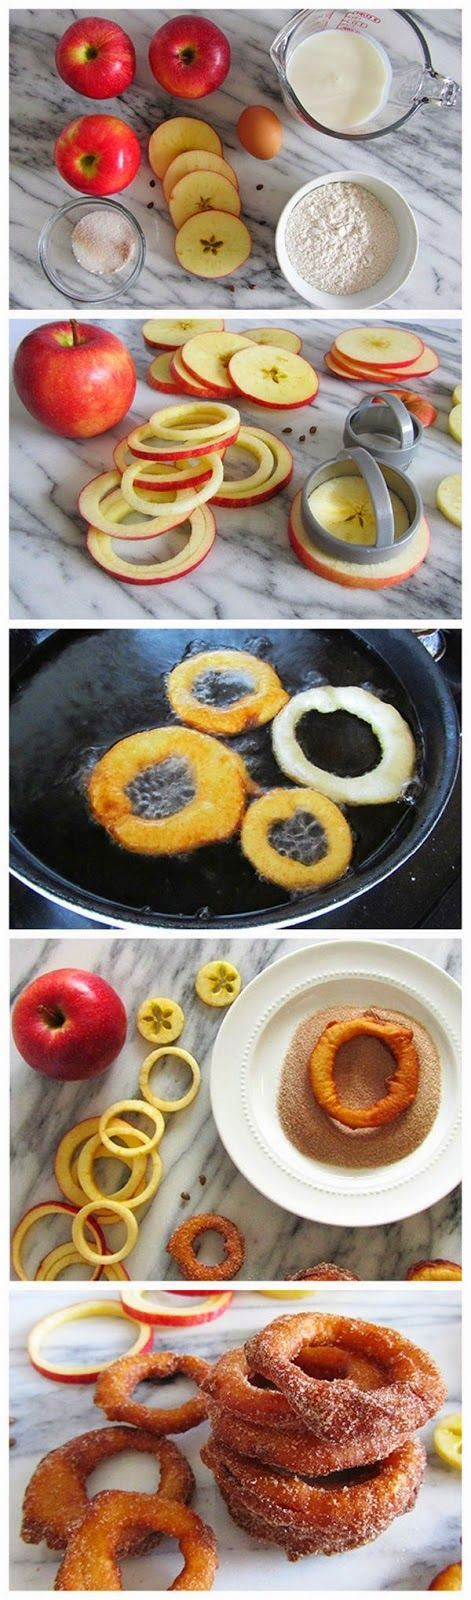 Cinnamon Apple Rings Recipe - YUM!